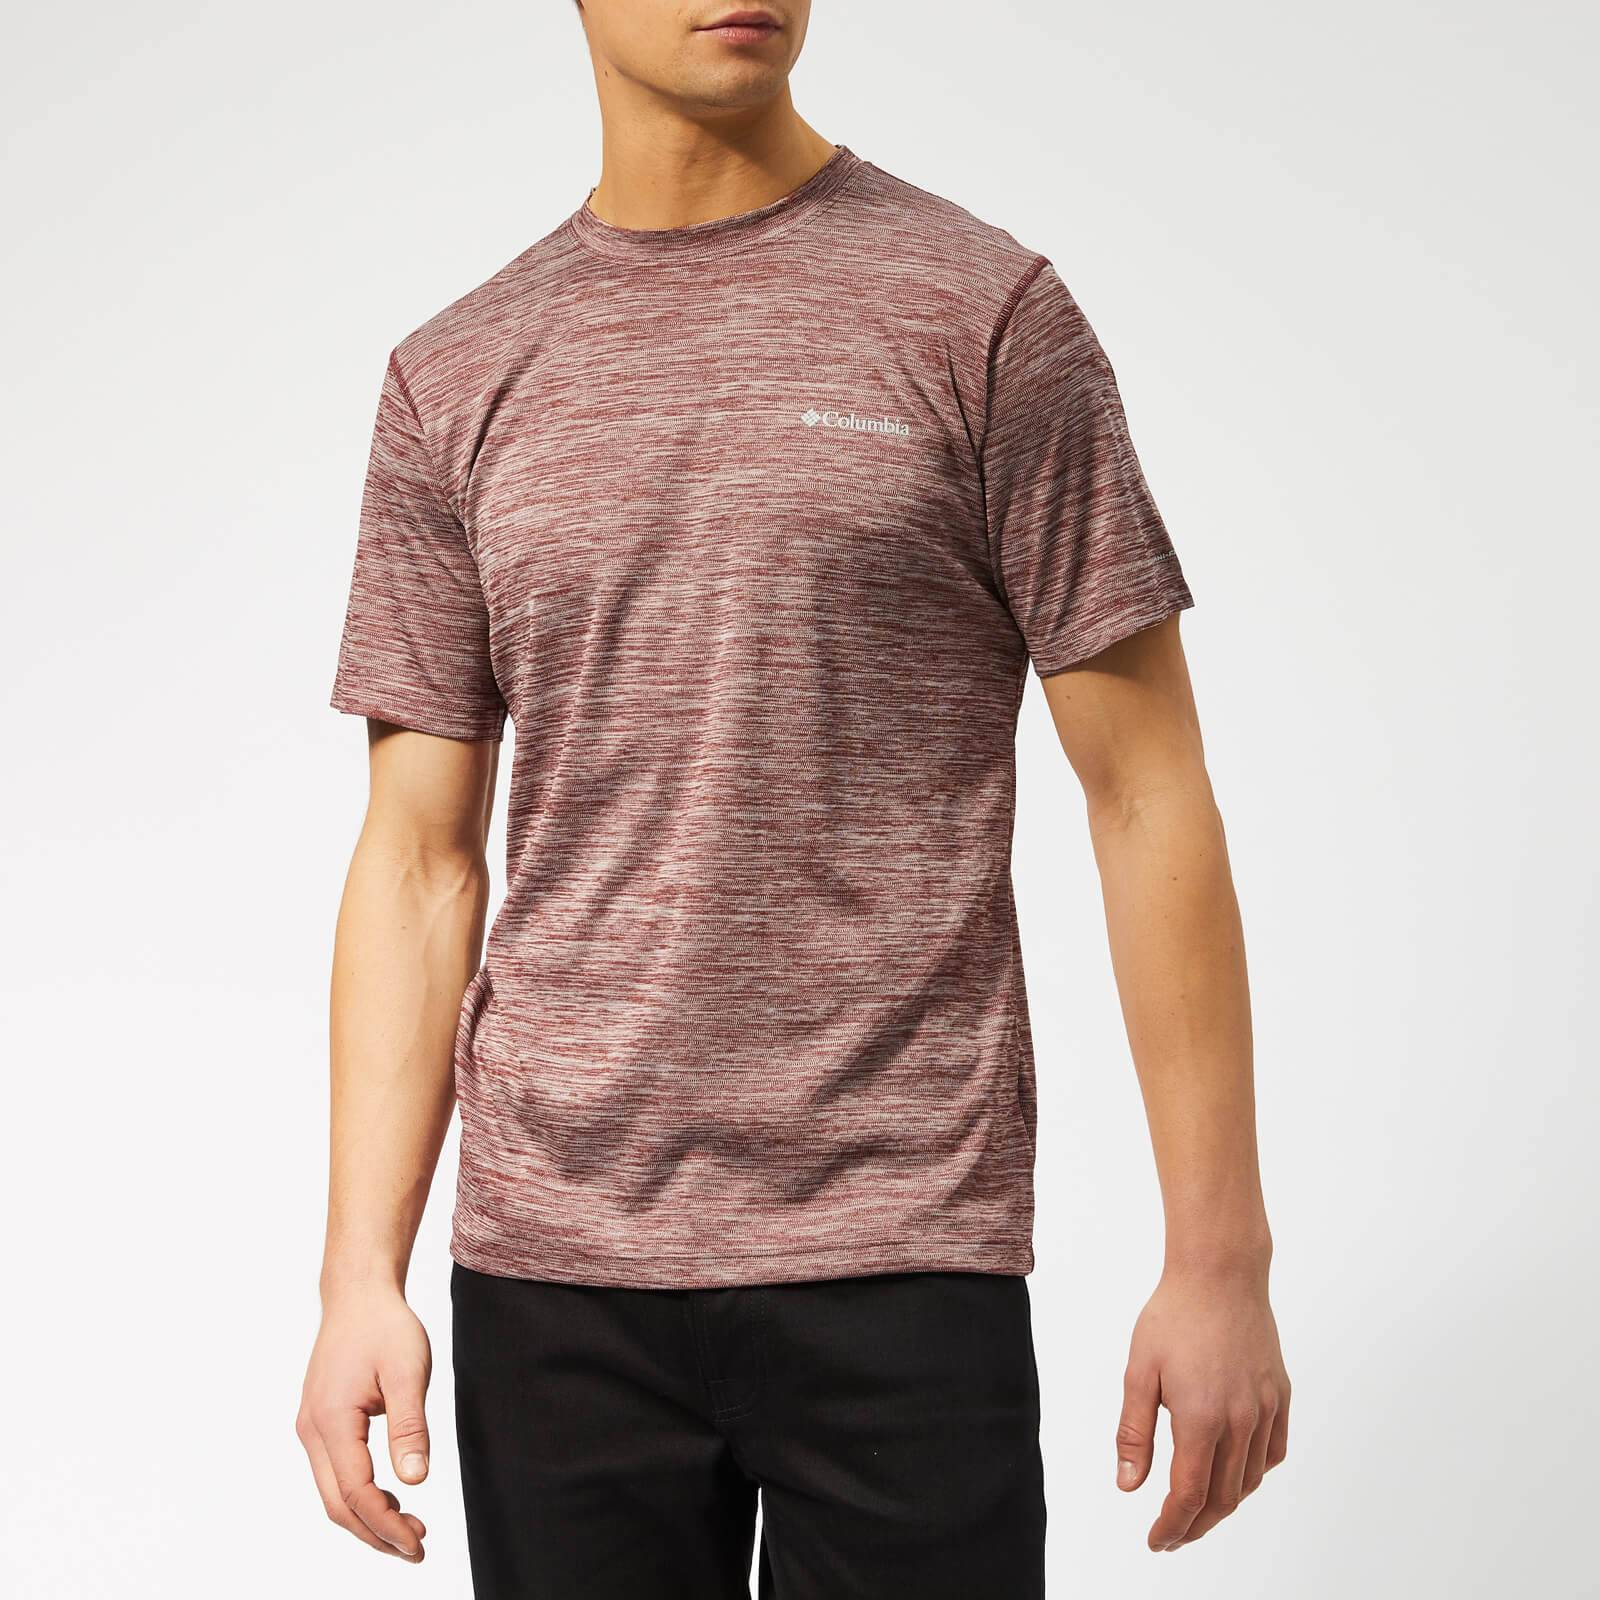 Columbia Men's Zero Rules Short Sleeve T-Shirt - Tapestry Heather - M - Red